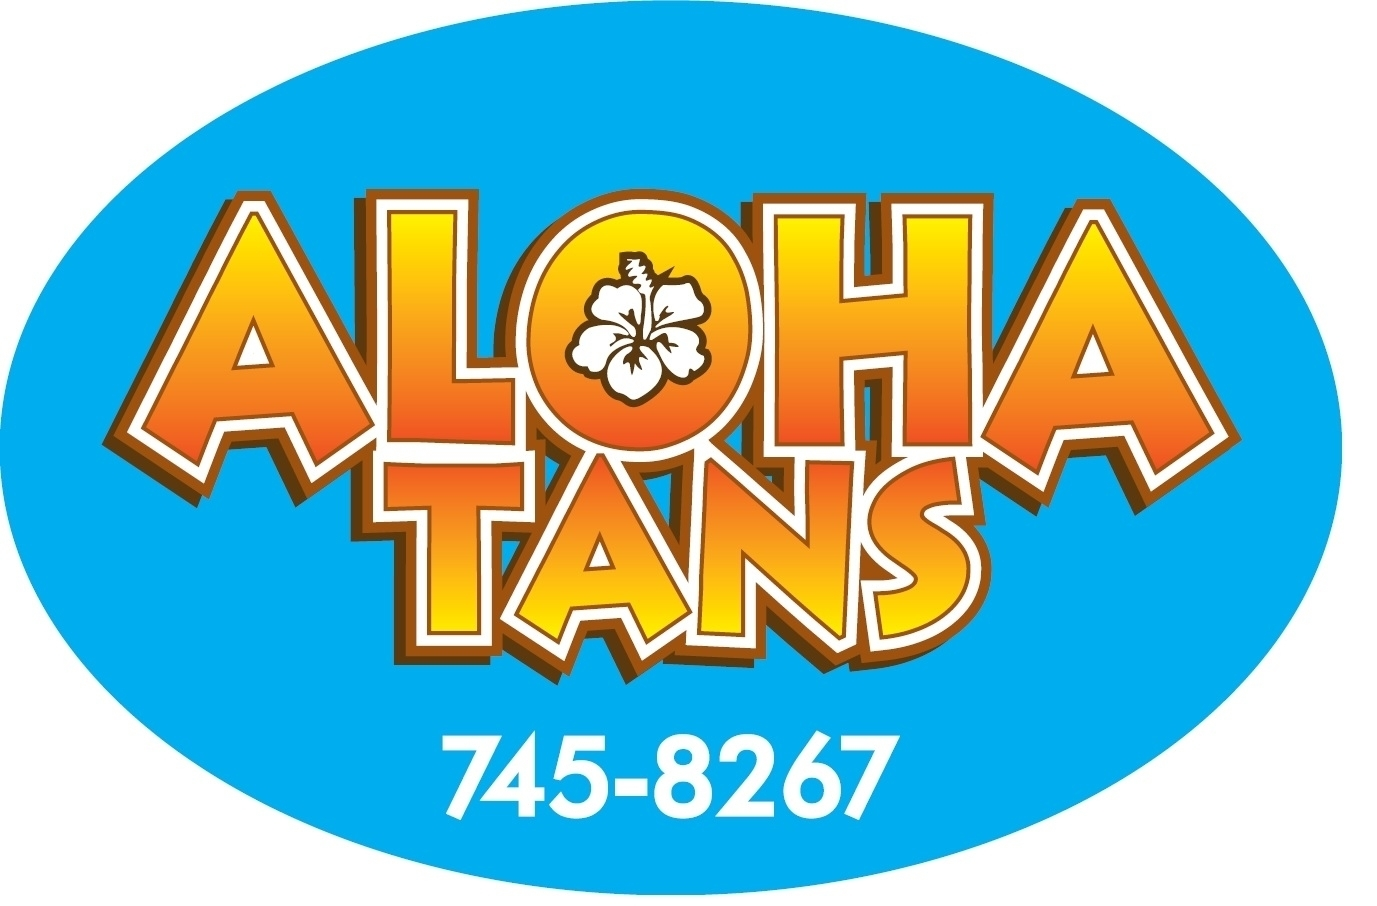 Aloha Tans Ltd in Mount Pearl: Call us or Stop by!